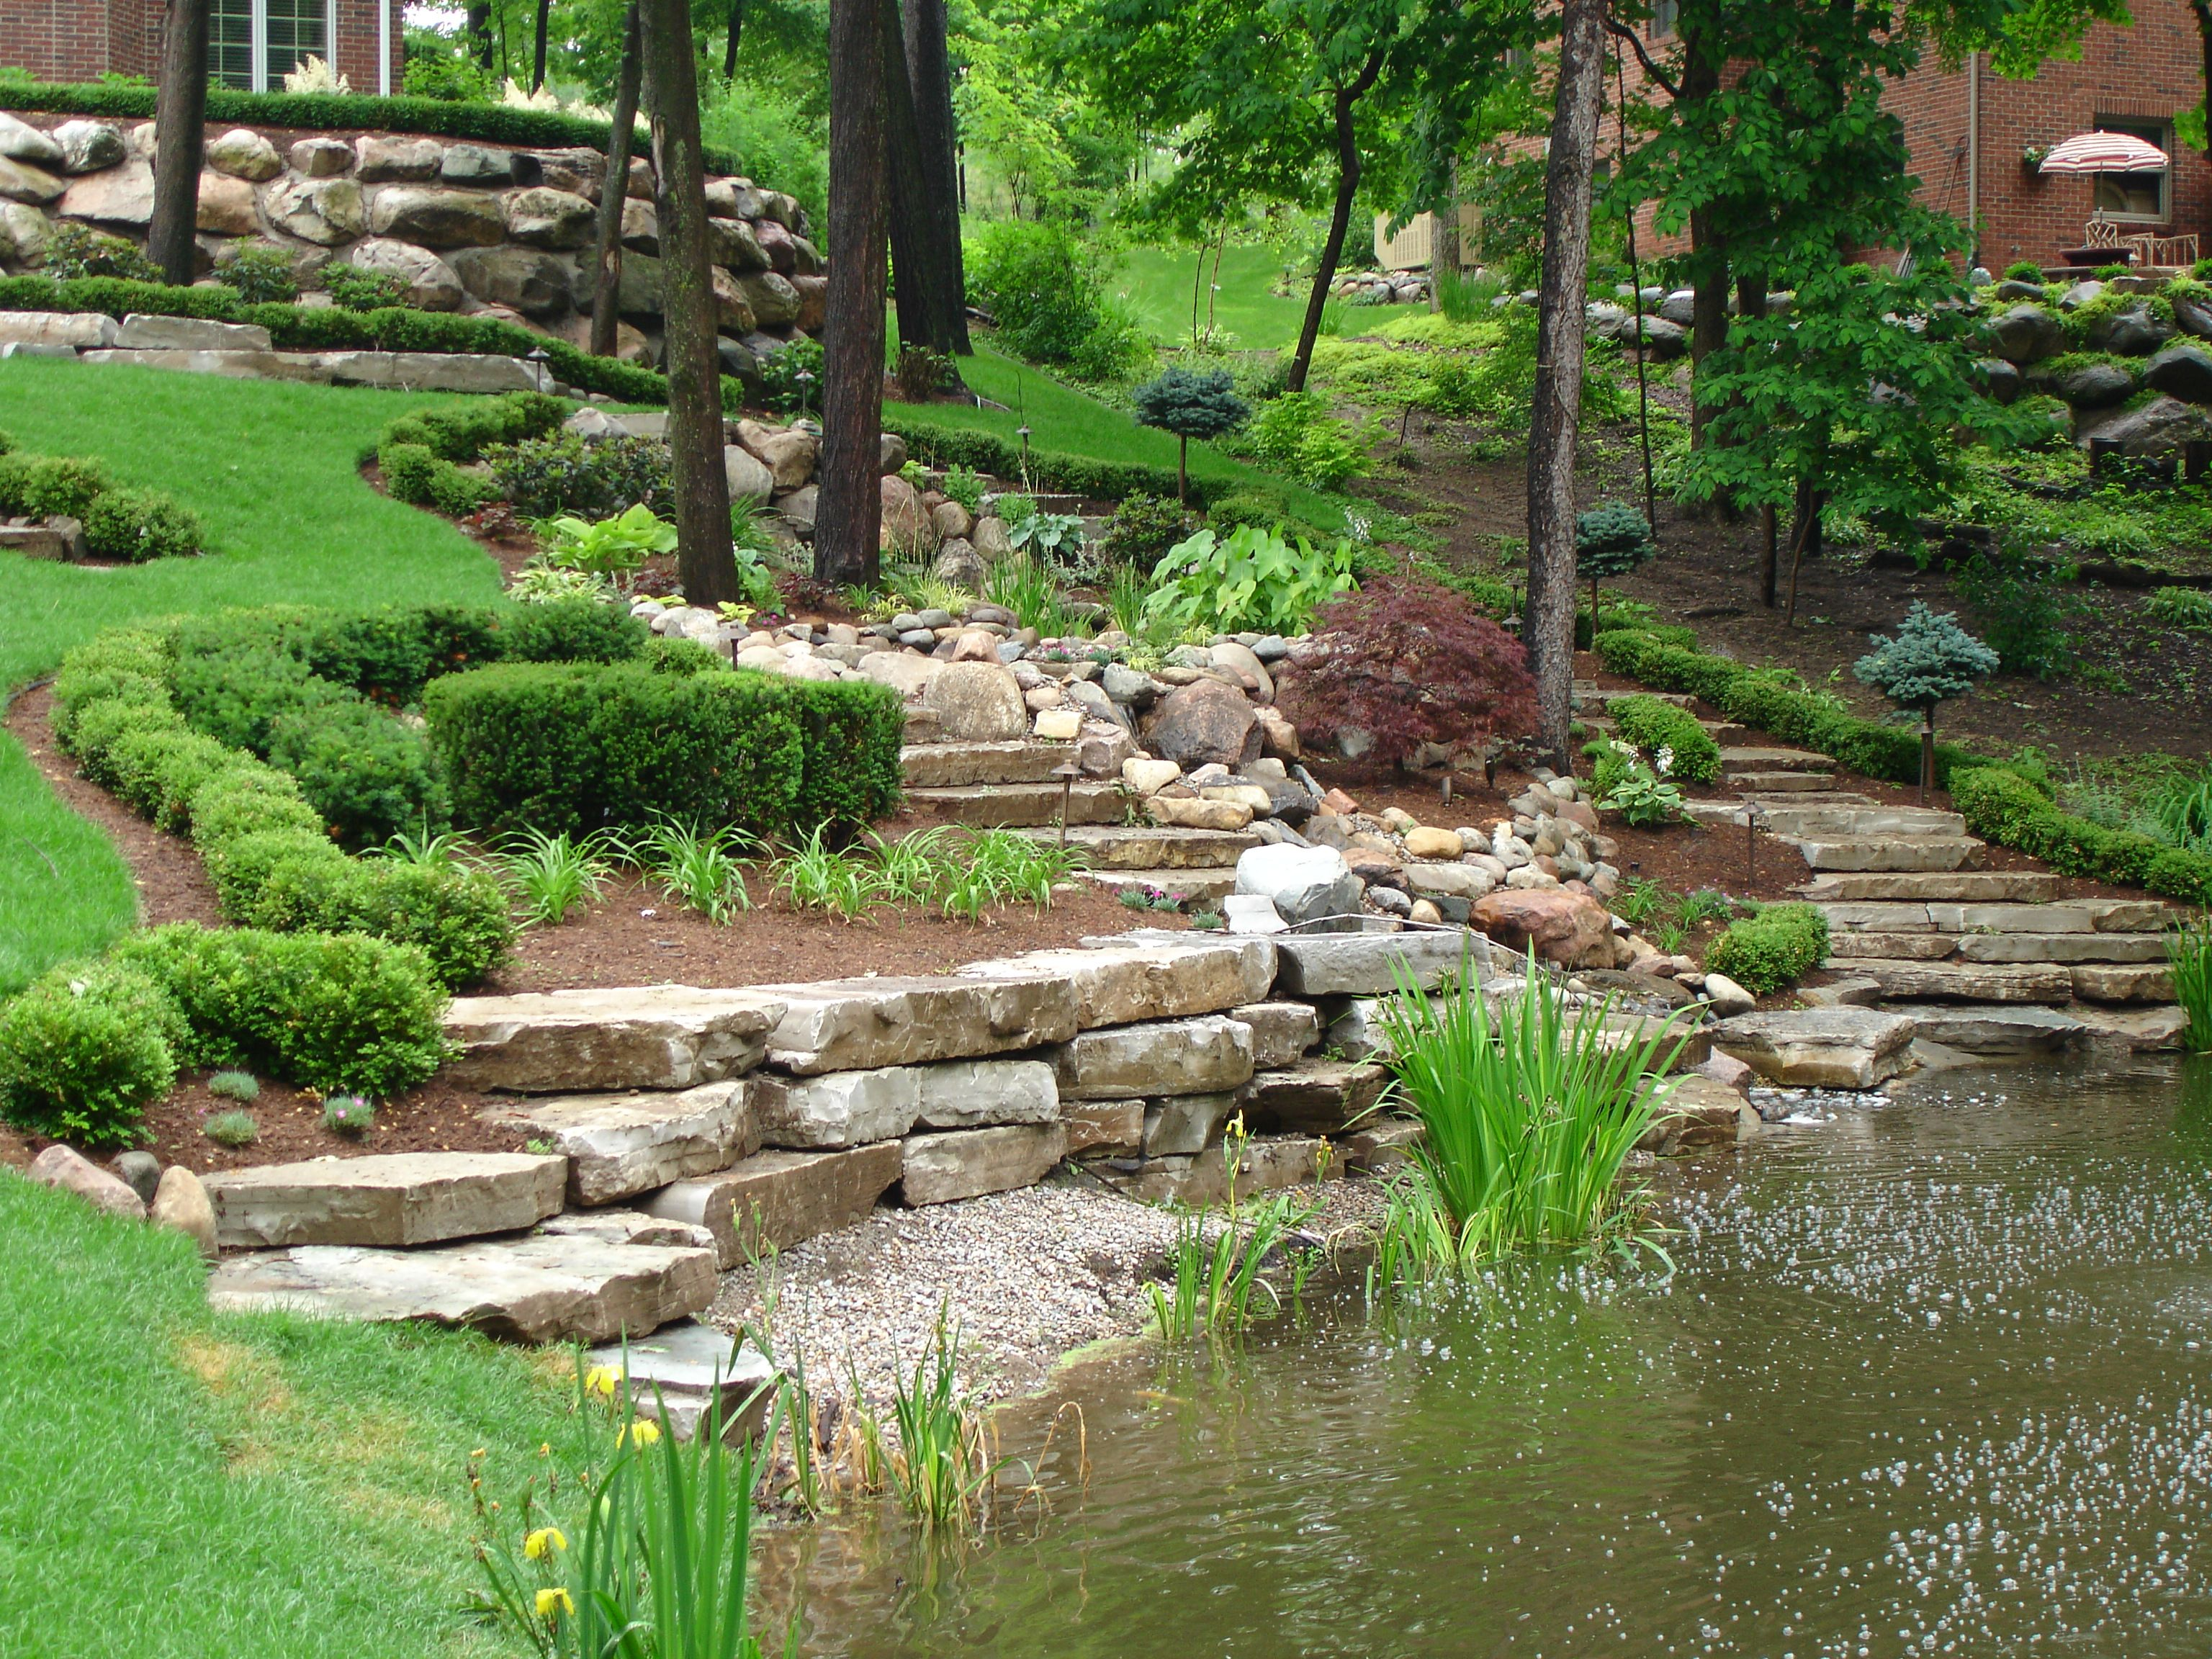 15 Mind-Blowing Backyard Landscape Ideas - Page 6 of 17 | Landscaping